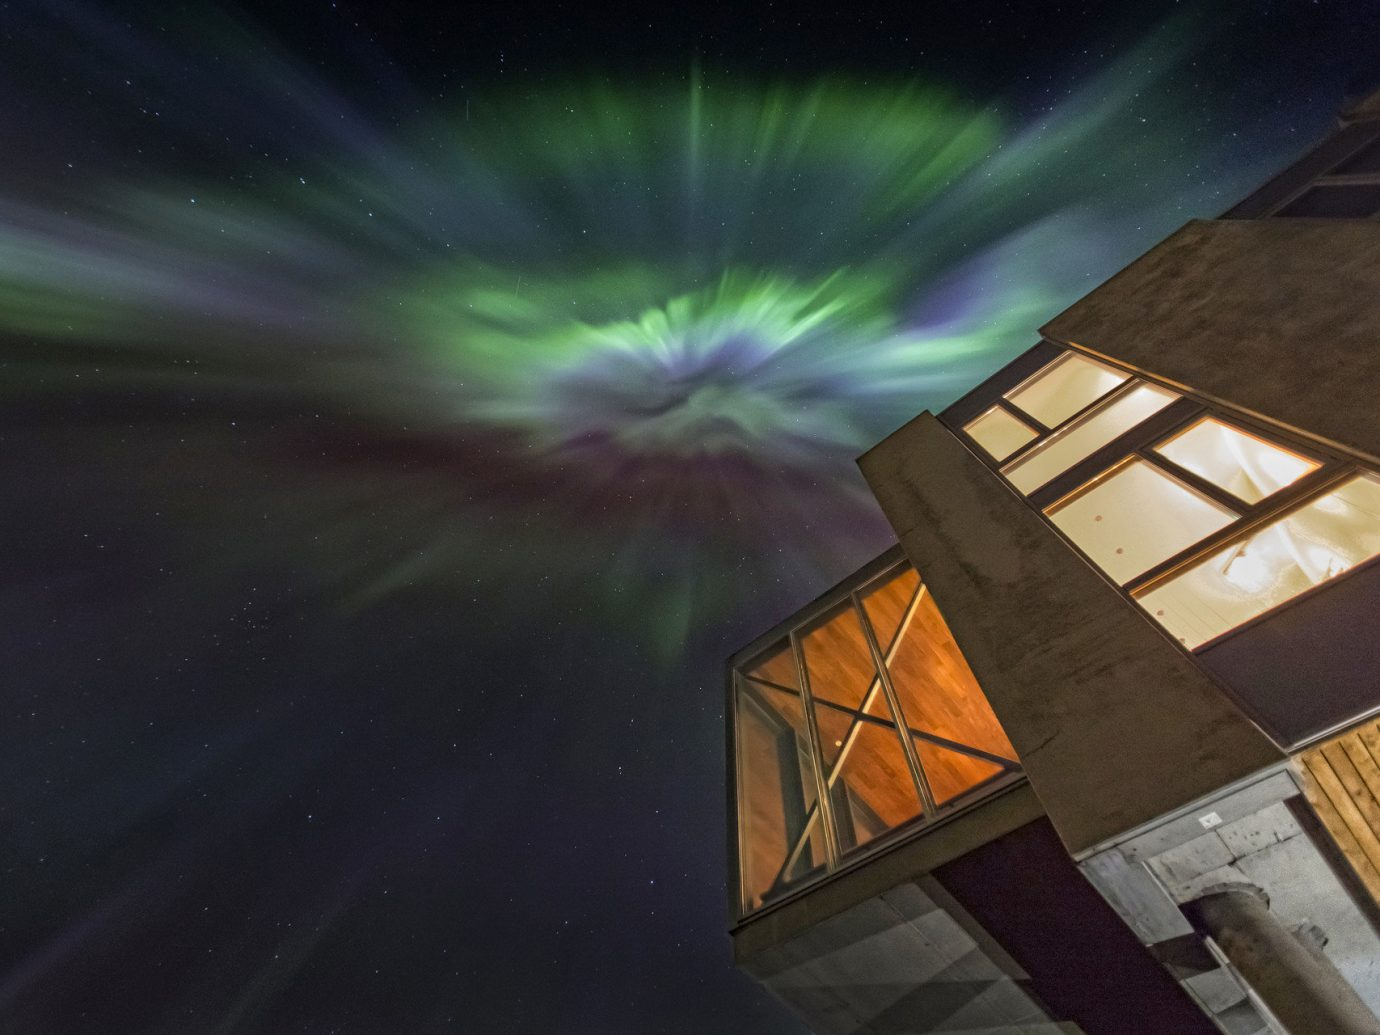 Architecture Boutique building calm contemporary Exterior Hotels isolation lights Luxury majestic Modern Nature Night Sky northern lights Outdoors remote serene sky Style + Design view color atmosphere light night atmosphere of earth darkness reflection screenshot aurora space star outer space sunlight